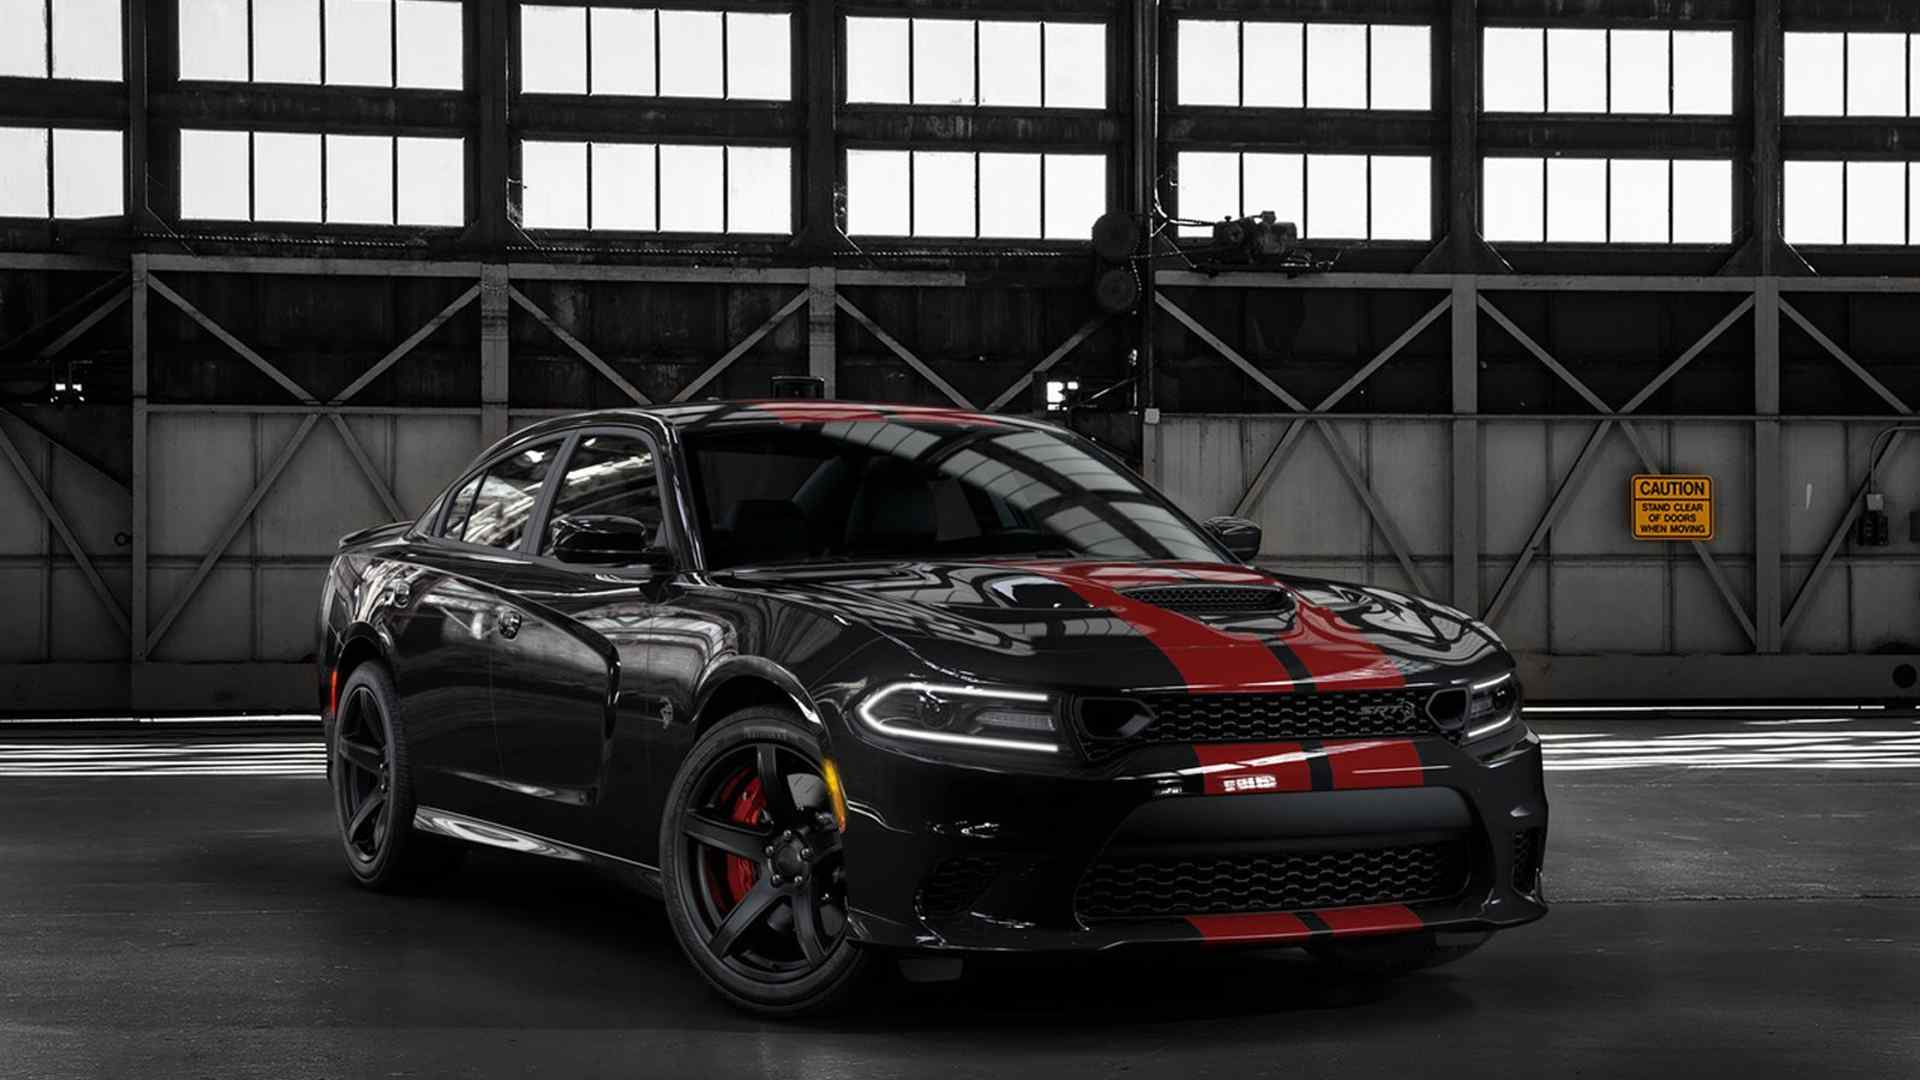 76 New 2019 Dodge Charger Srt8 Hellcat Configurations